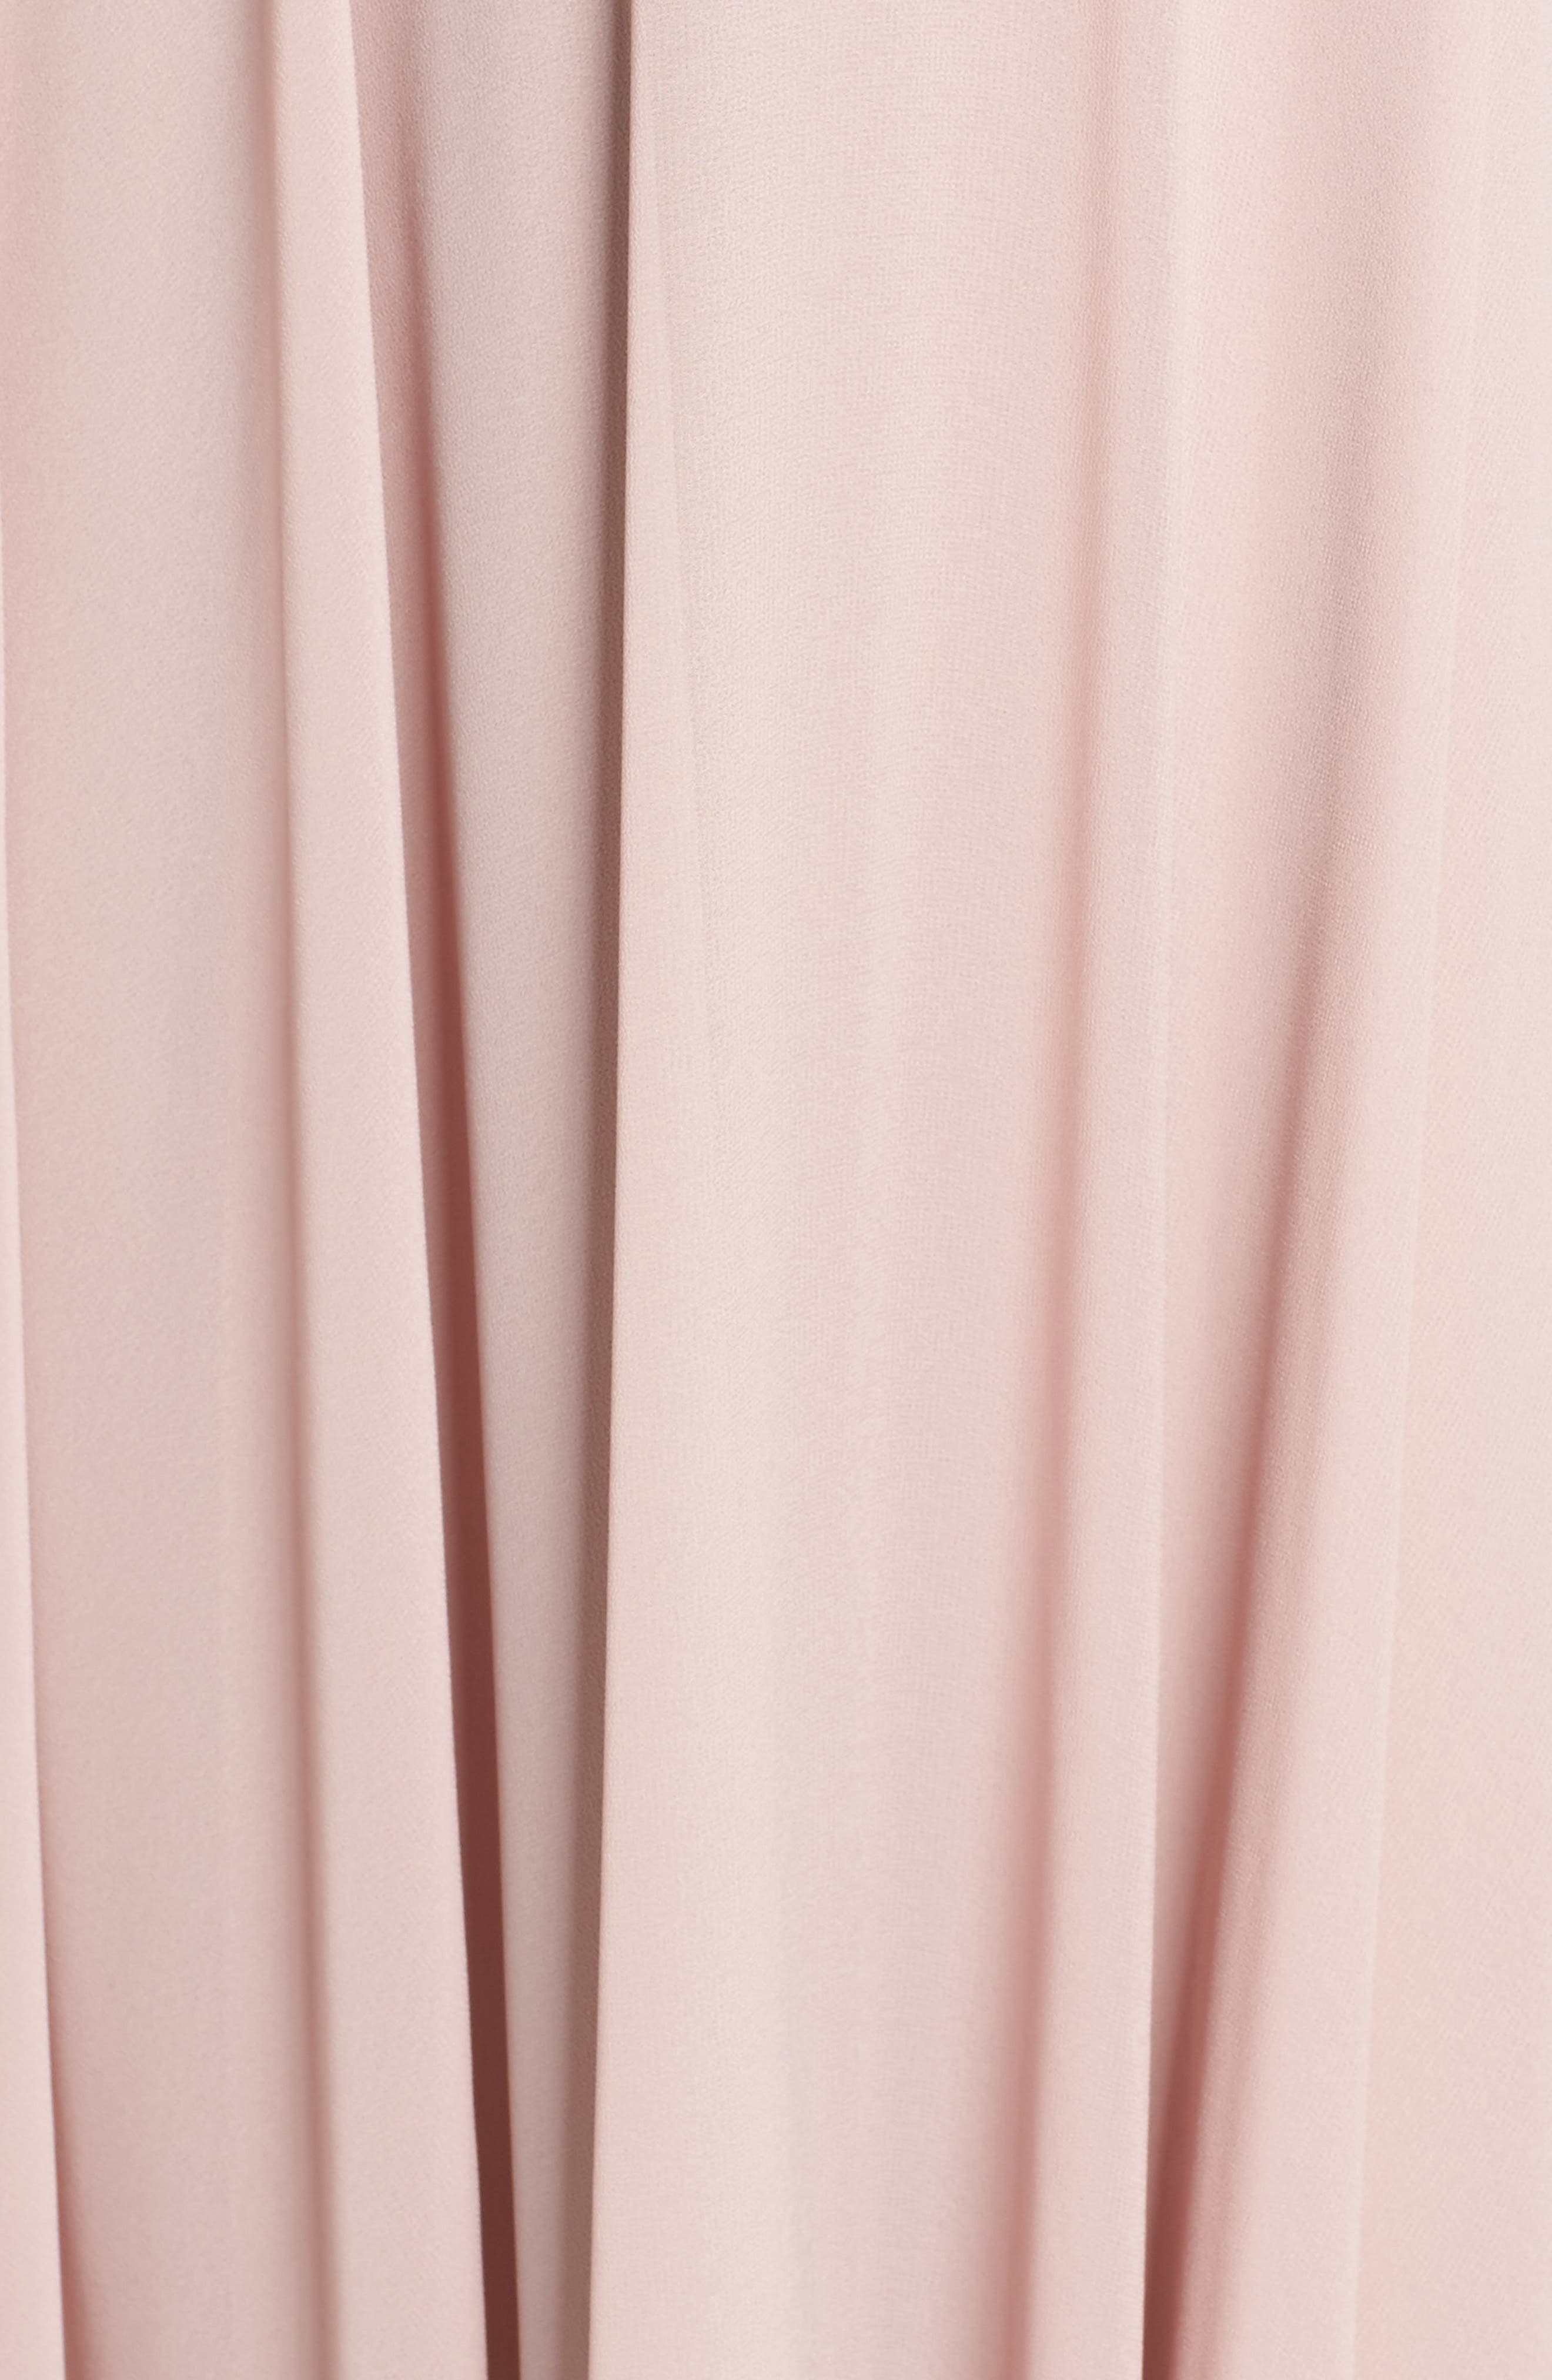 Ruffle Chiffon Gown,                             Alternate thumbnail 5, color,                             Dusty Rose